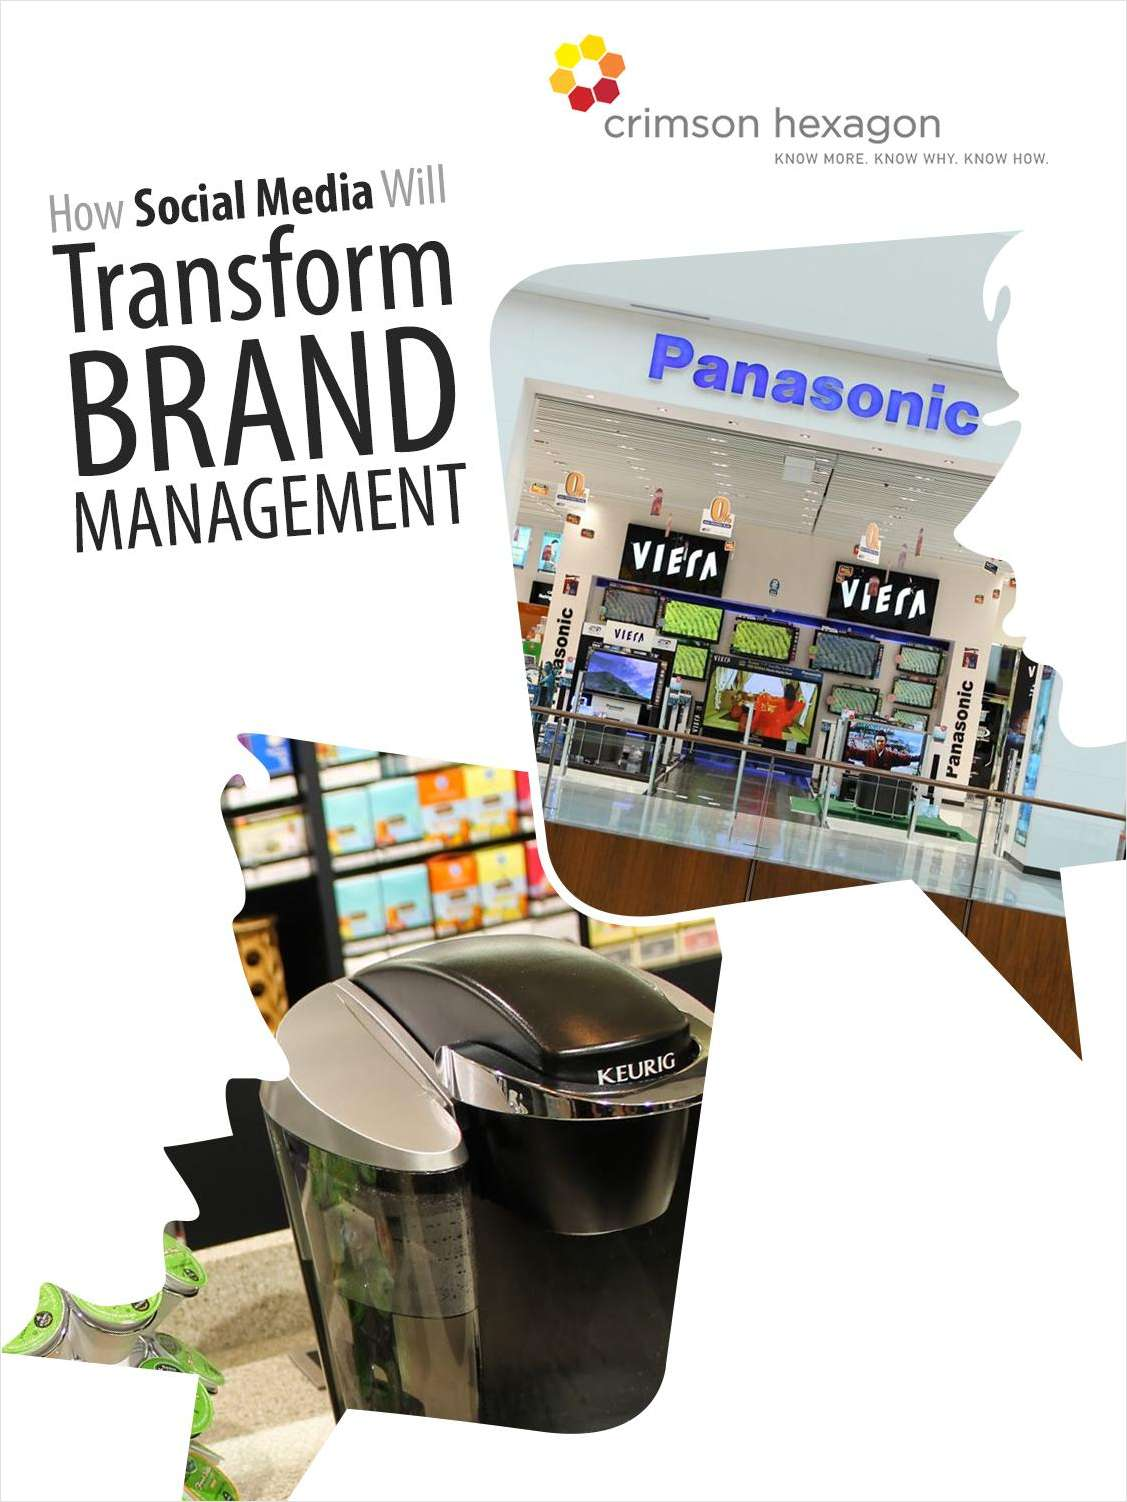 How Social Media Will Transform Brand Management